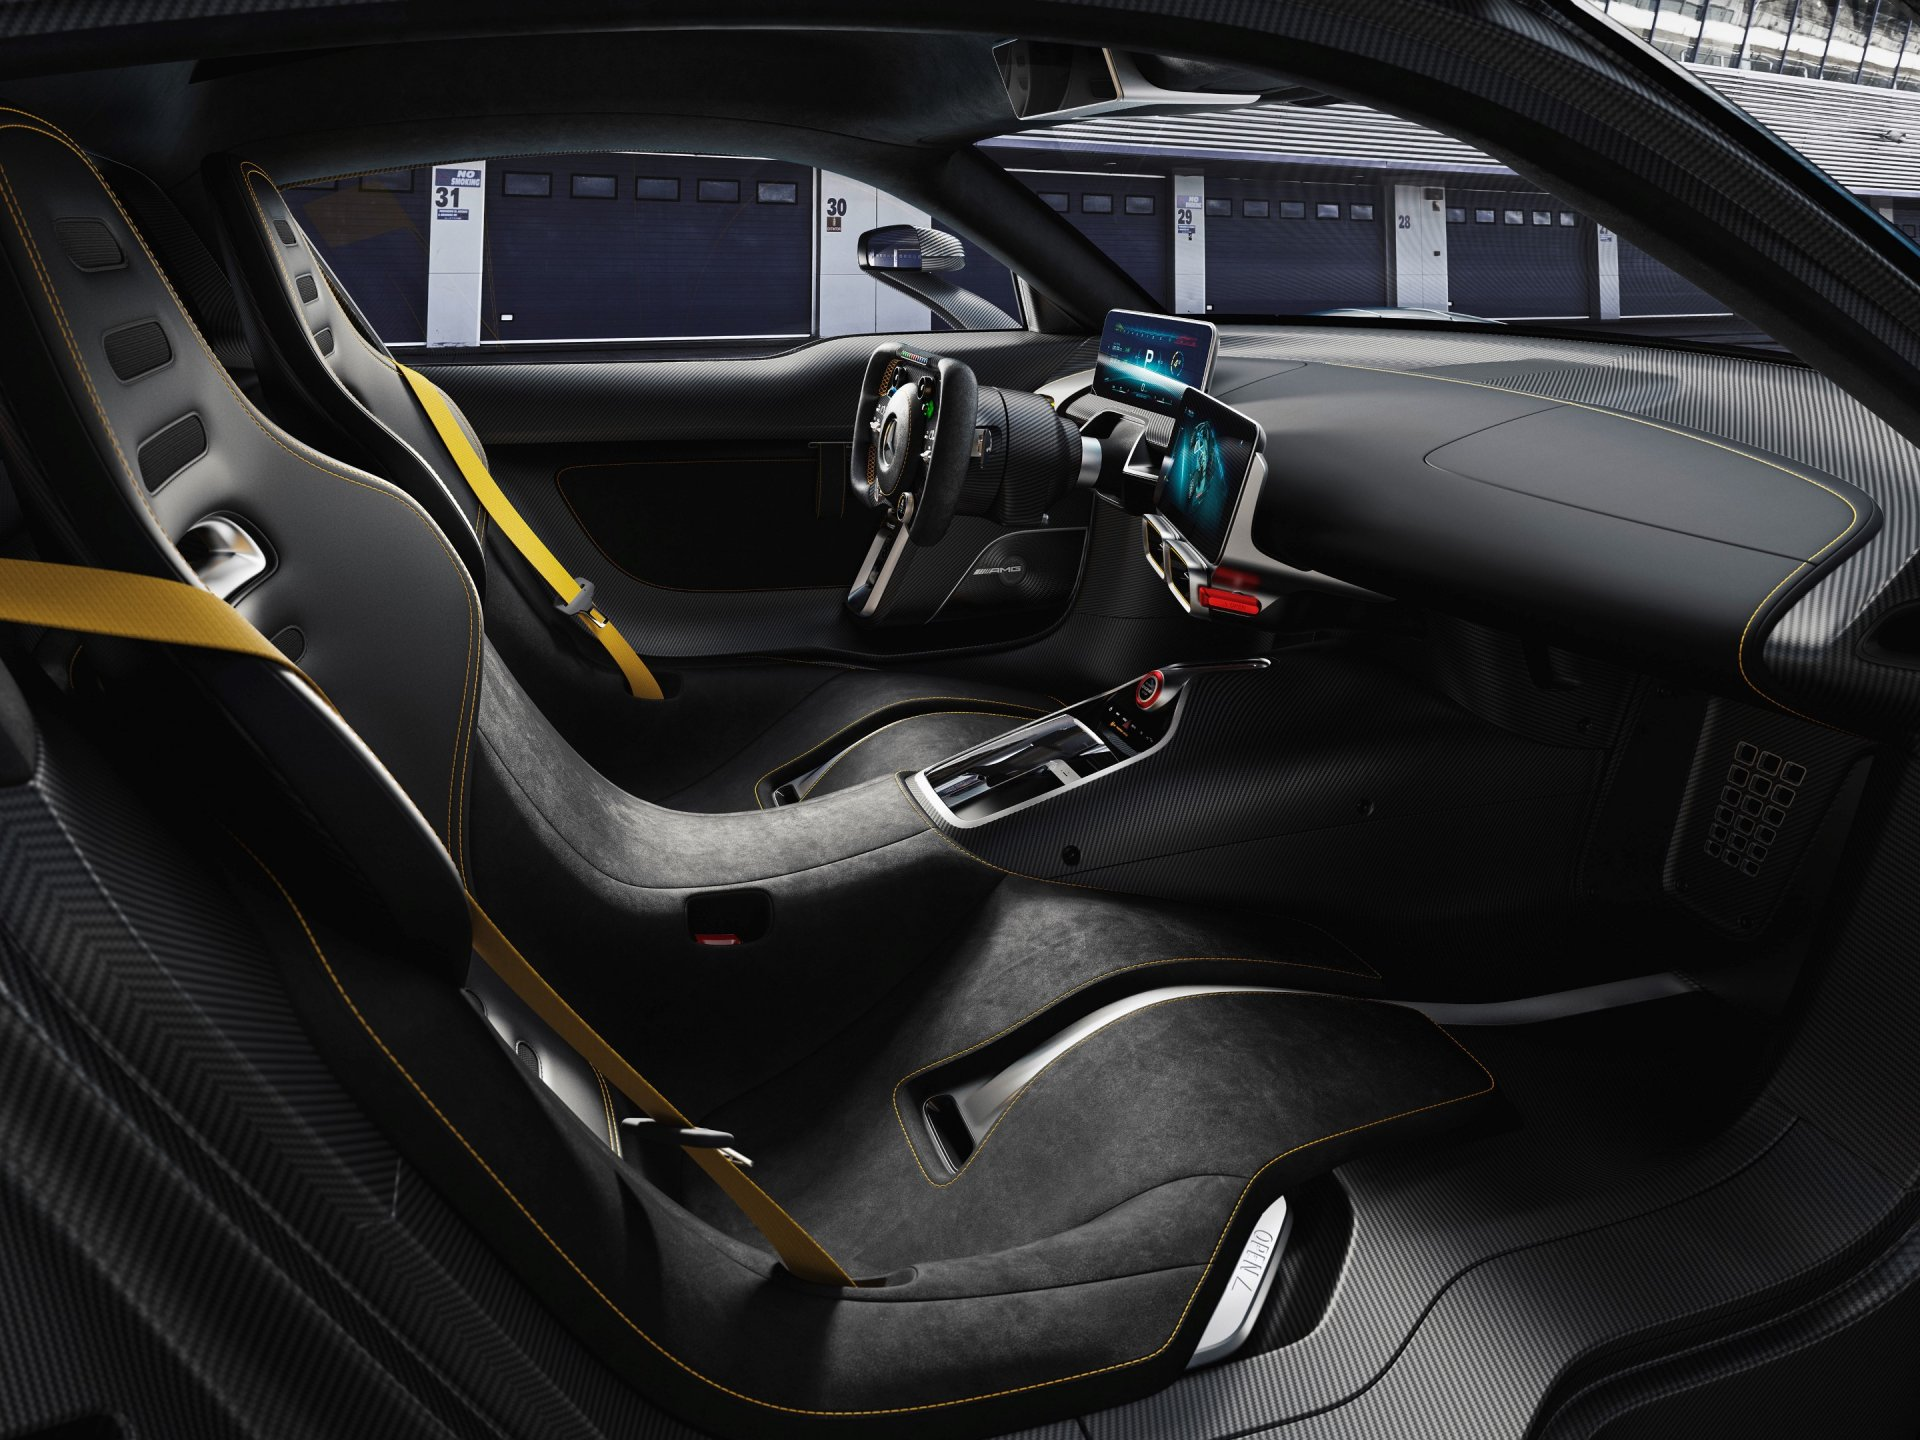 Mercedes Amg Project One Car Shock Alarm Circuit Electronic Projects Interior View